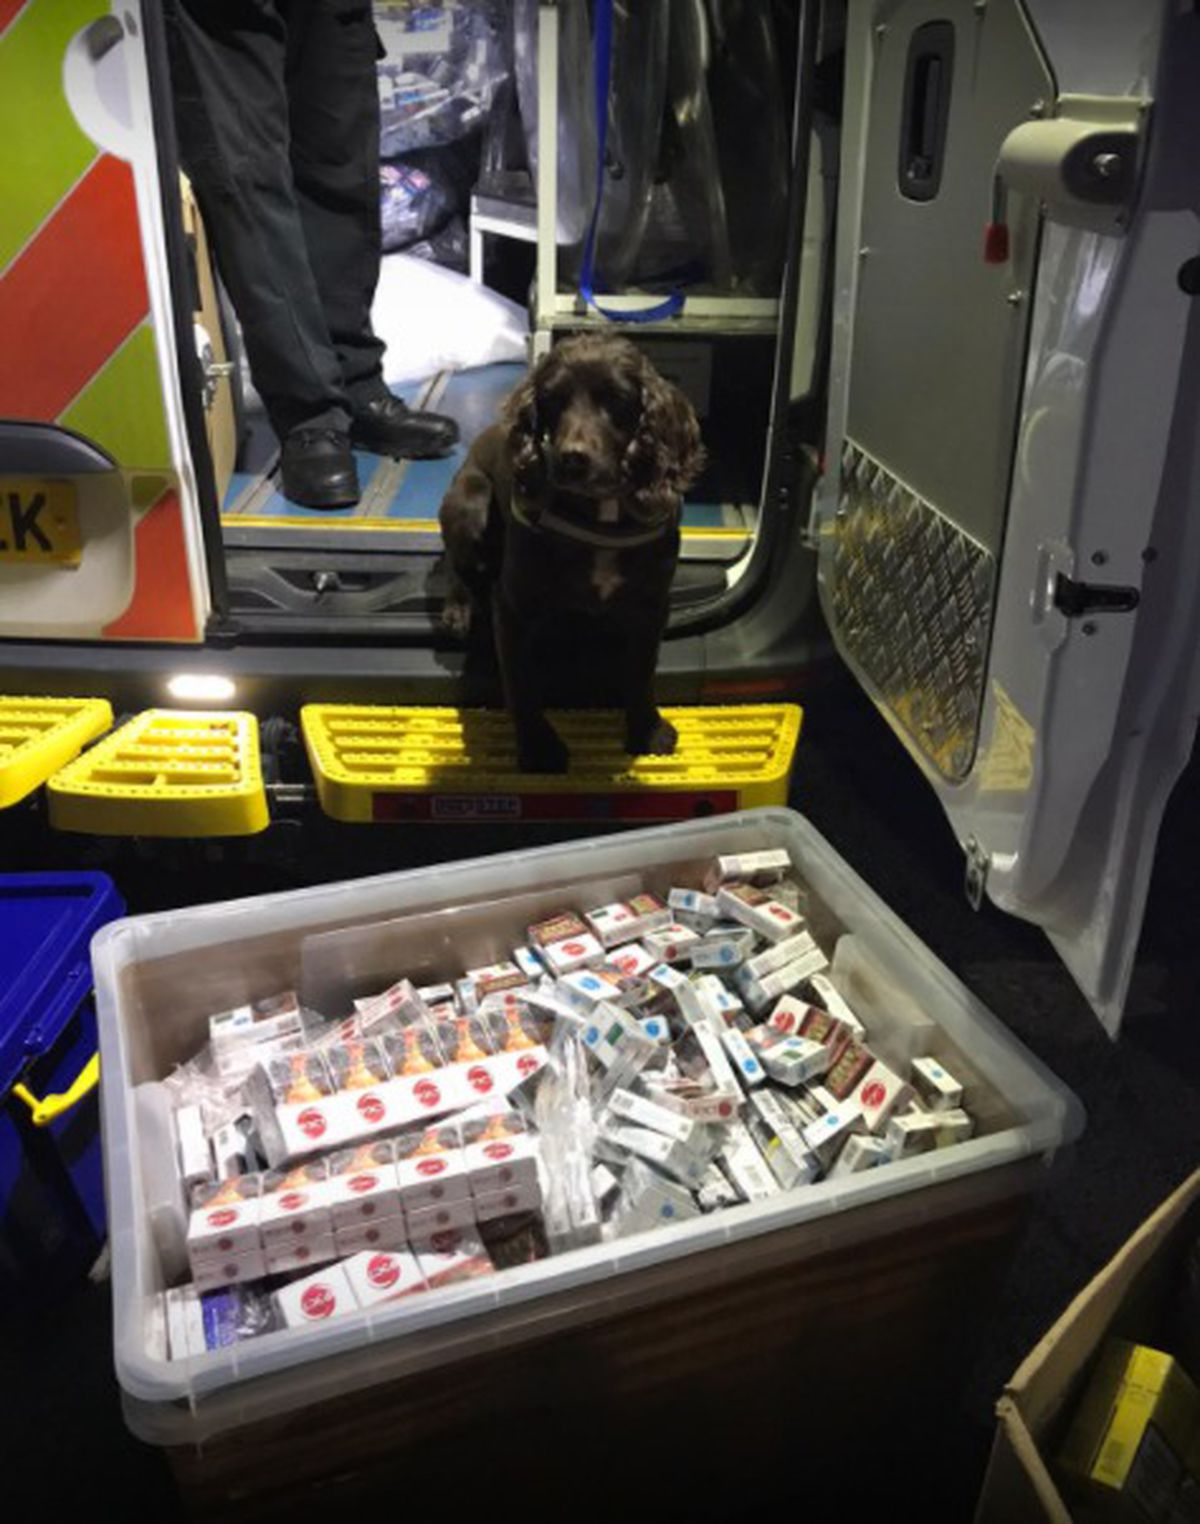 Sniffer dogs with the haul